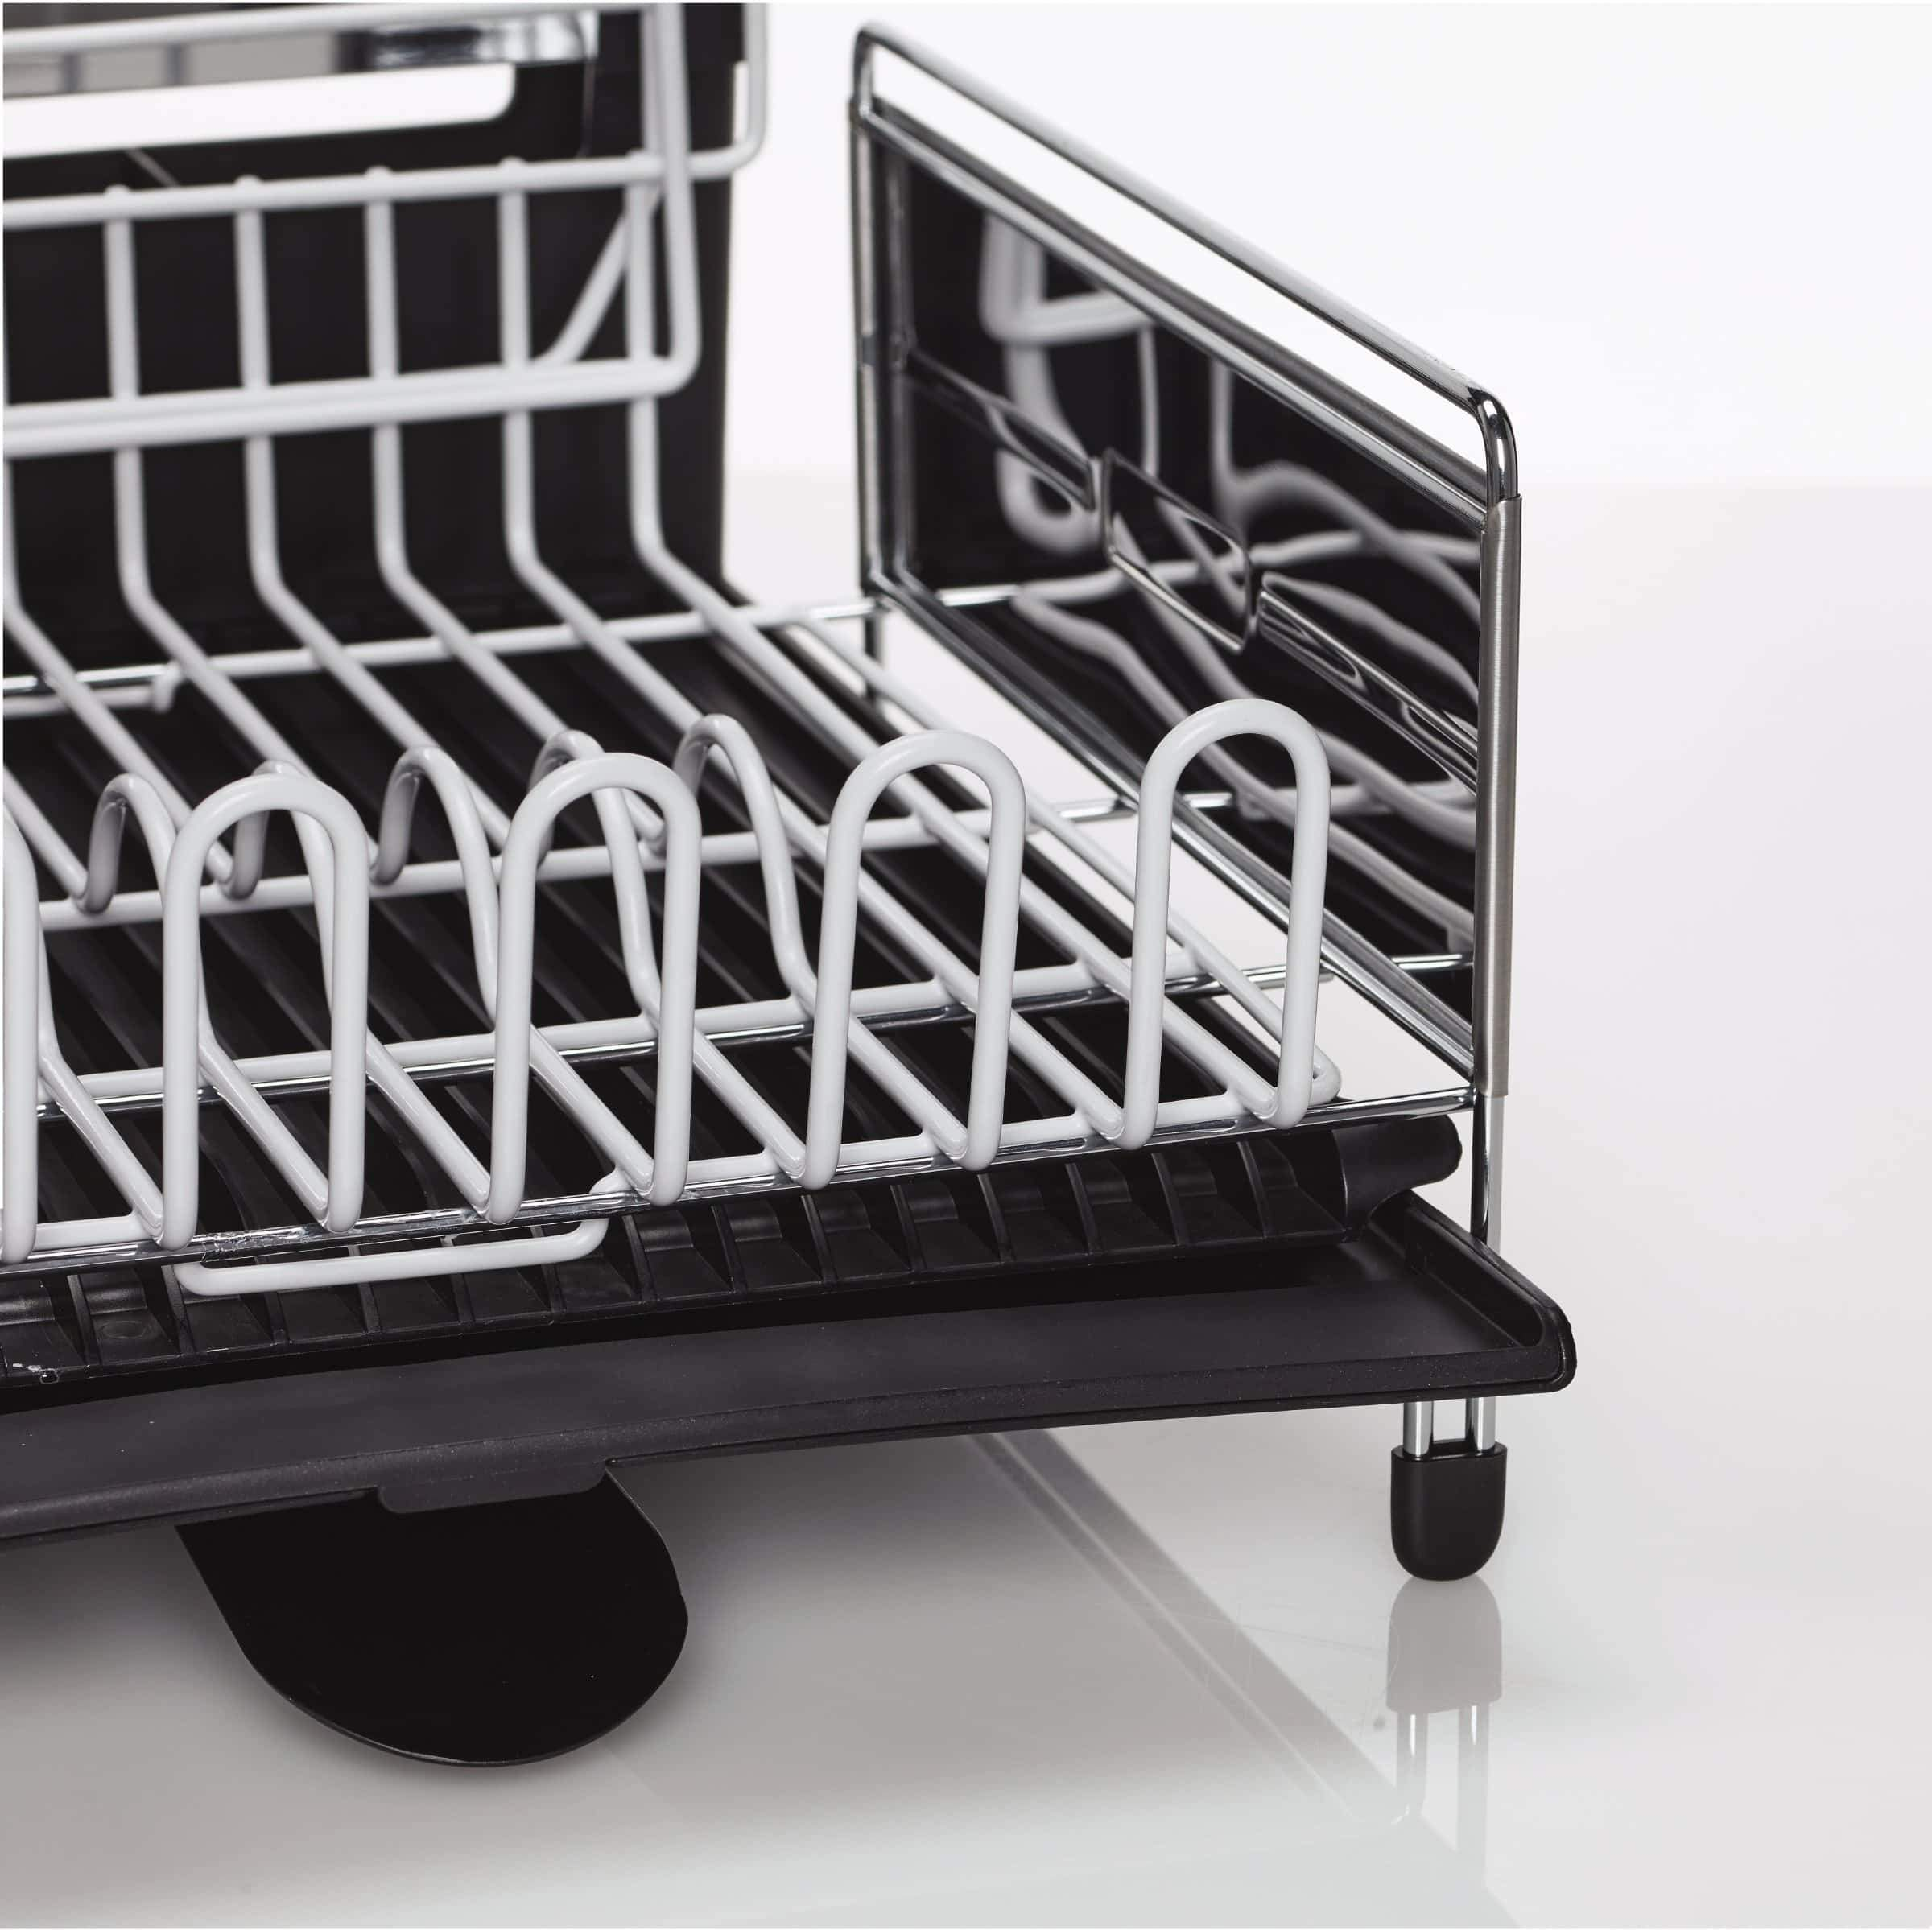 Amazon best sabatier 5199813 expandable stainless steel dish rack with rust resistant soft coated wires and bi directional spout silver gray